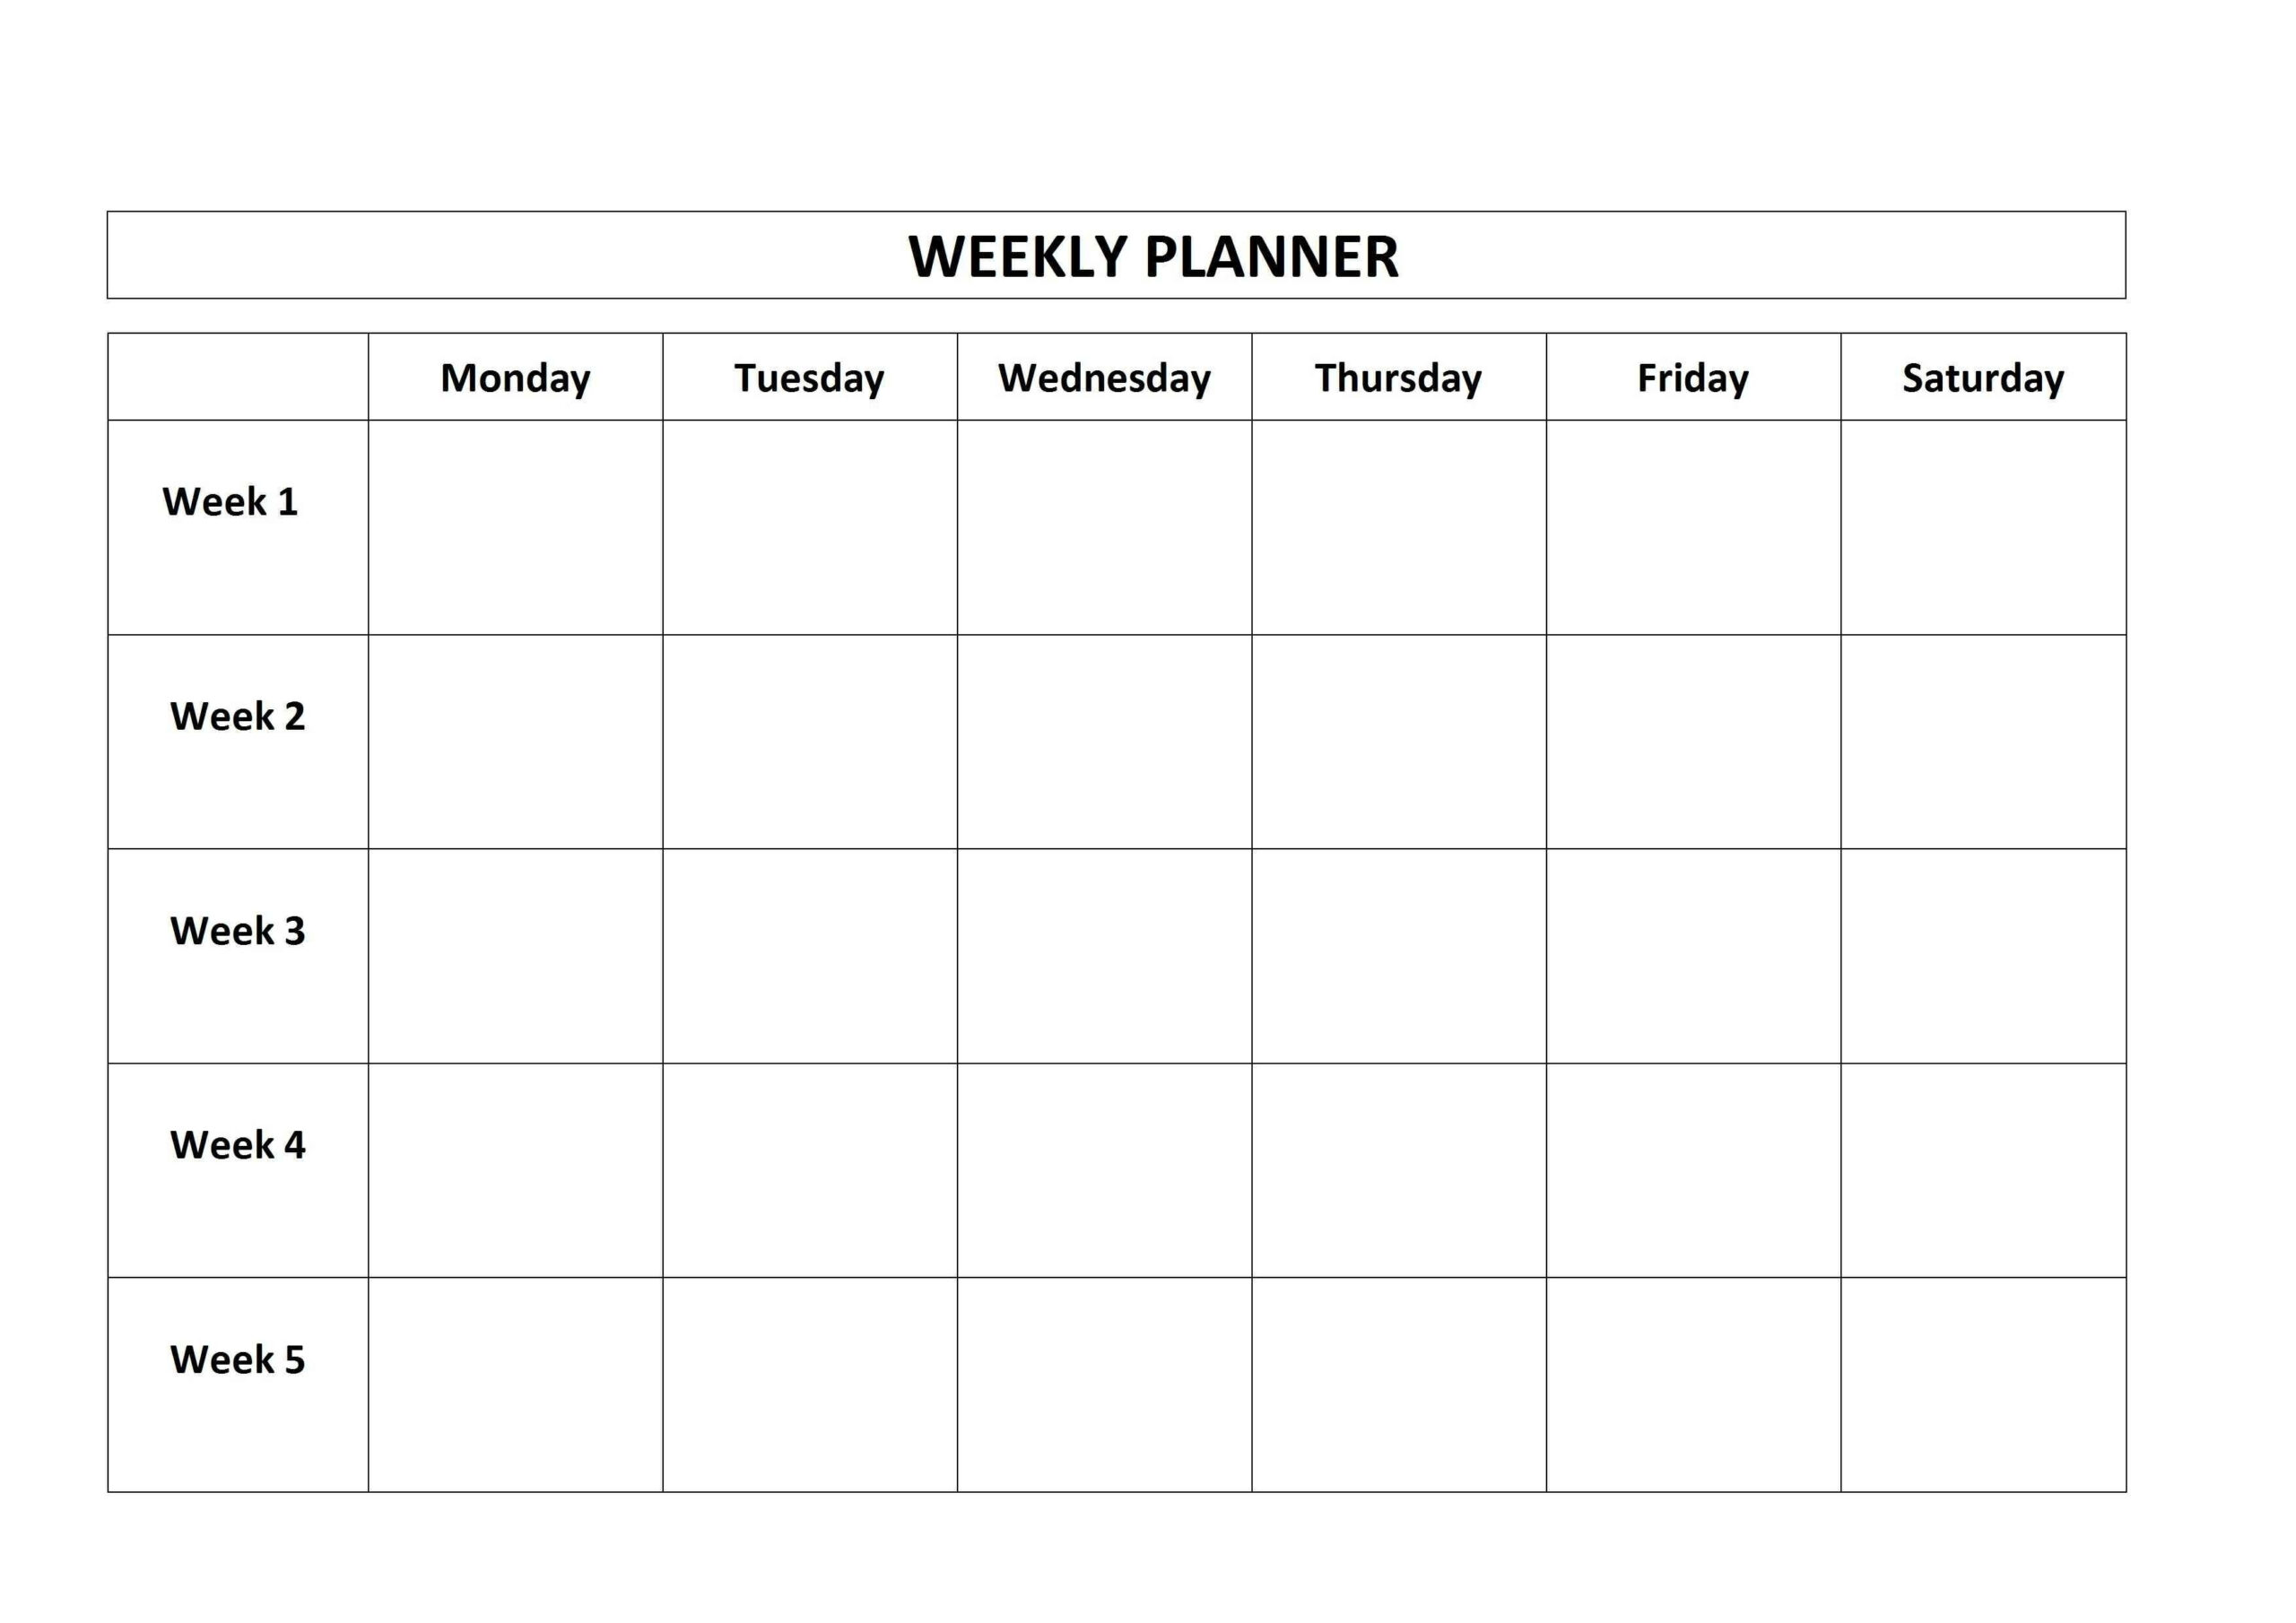 Monday To Friday Schedule Template | Example Calendar  Monday Through Friday Schedule